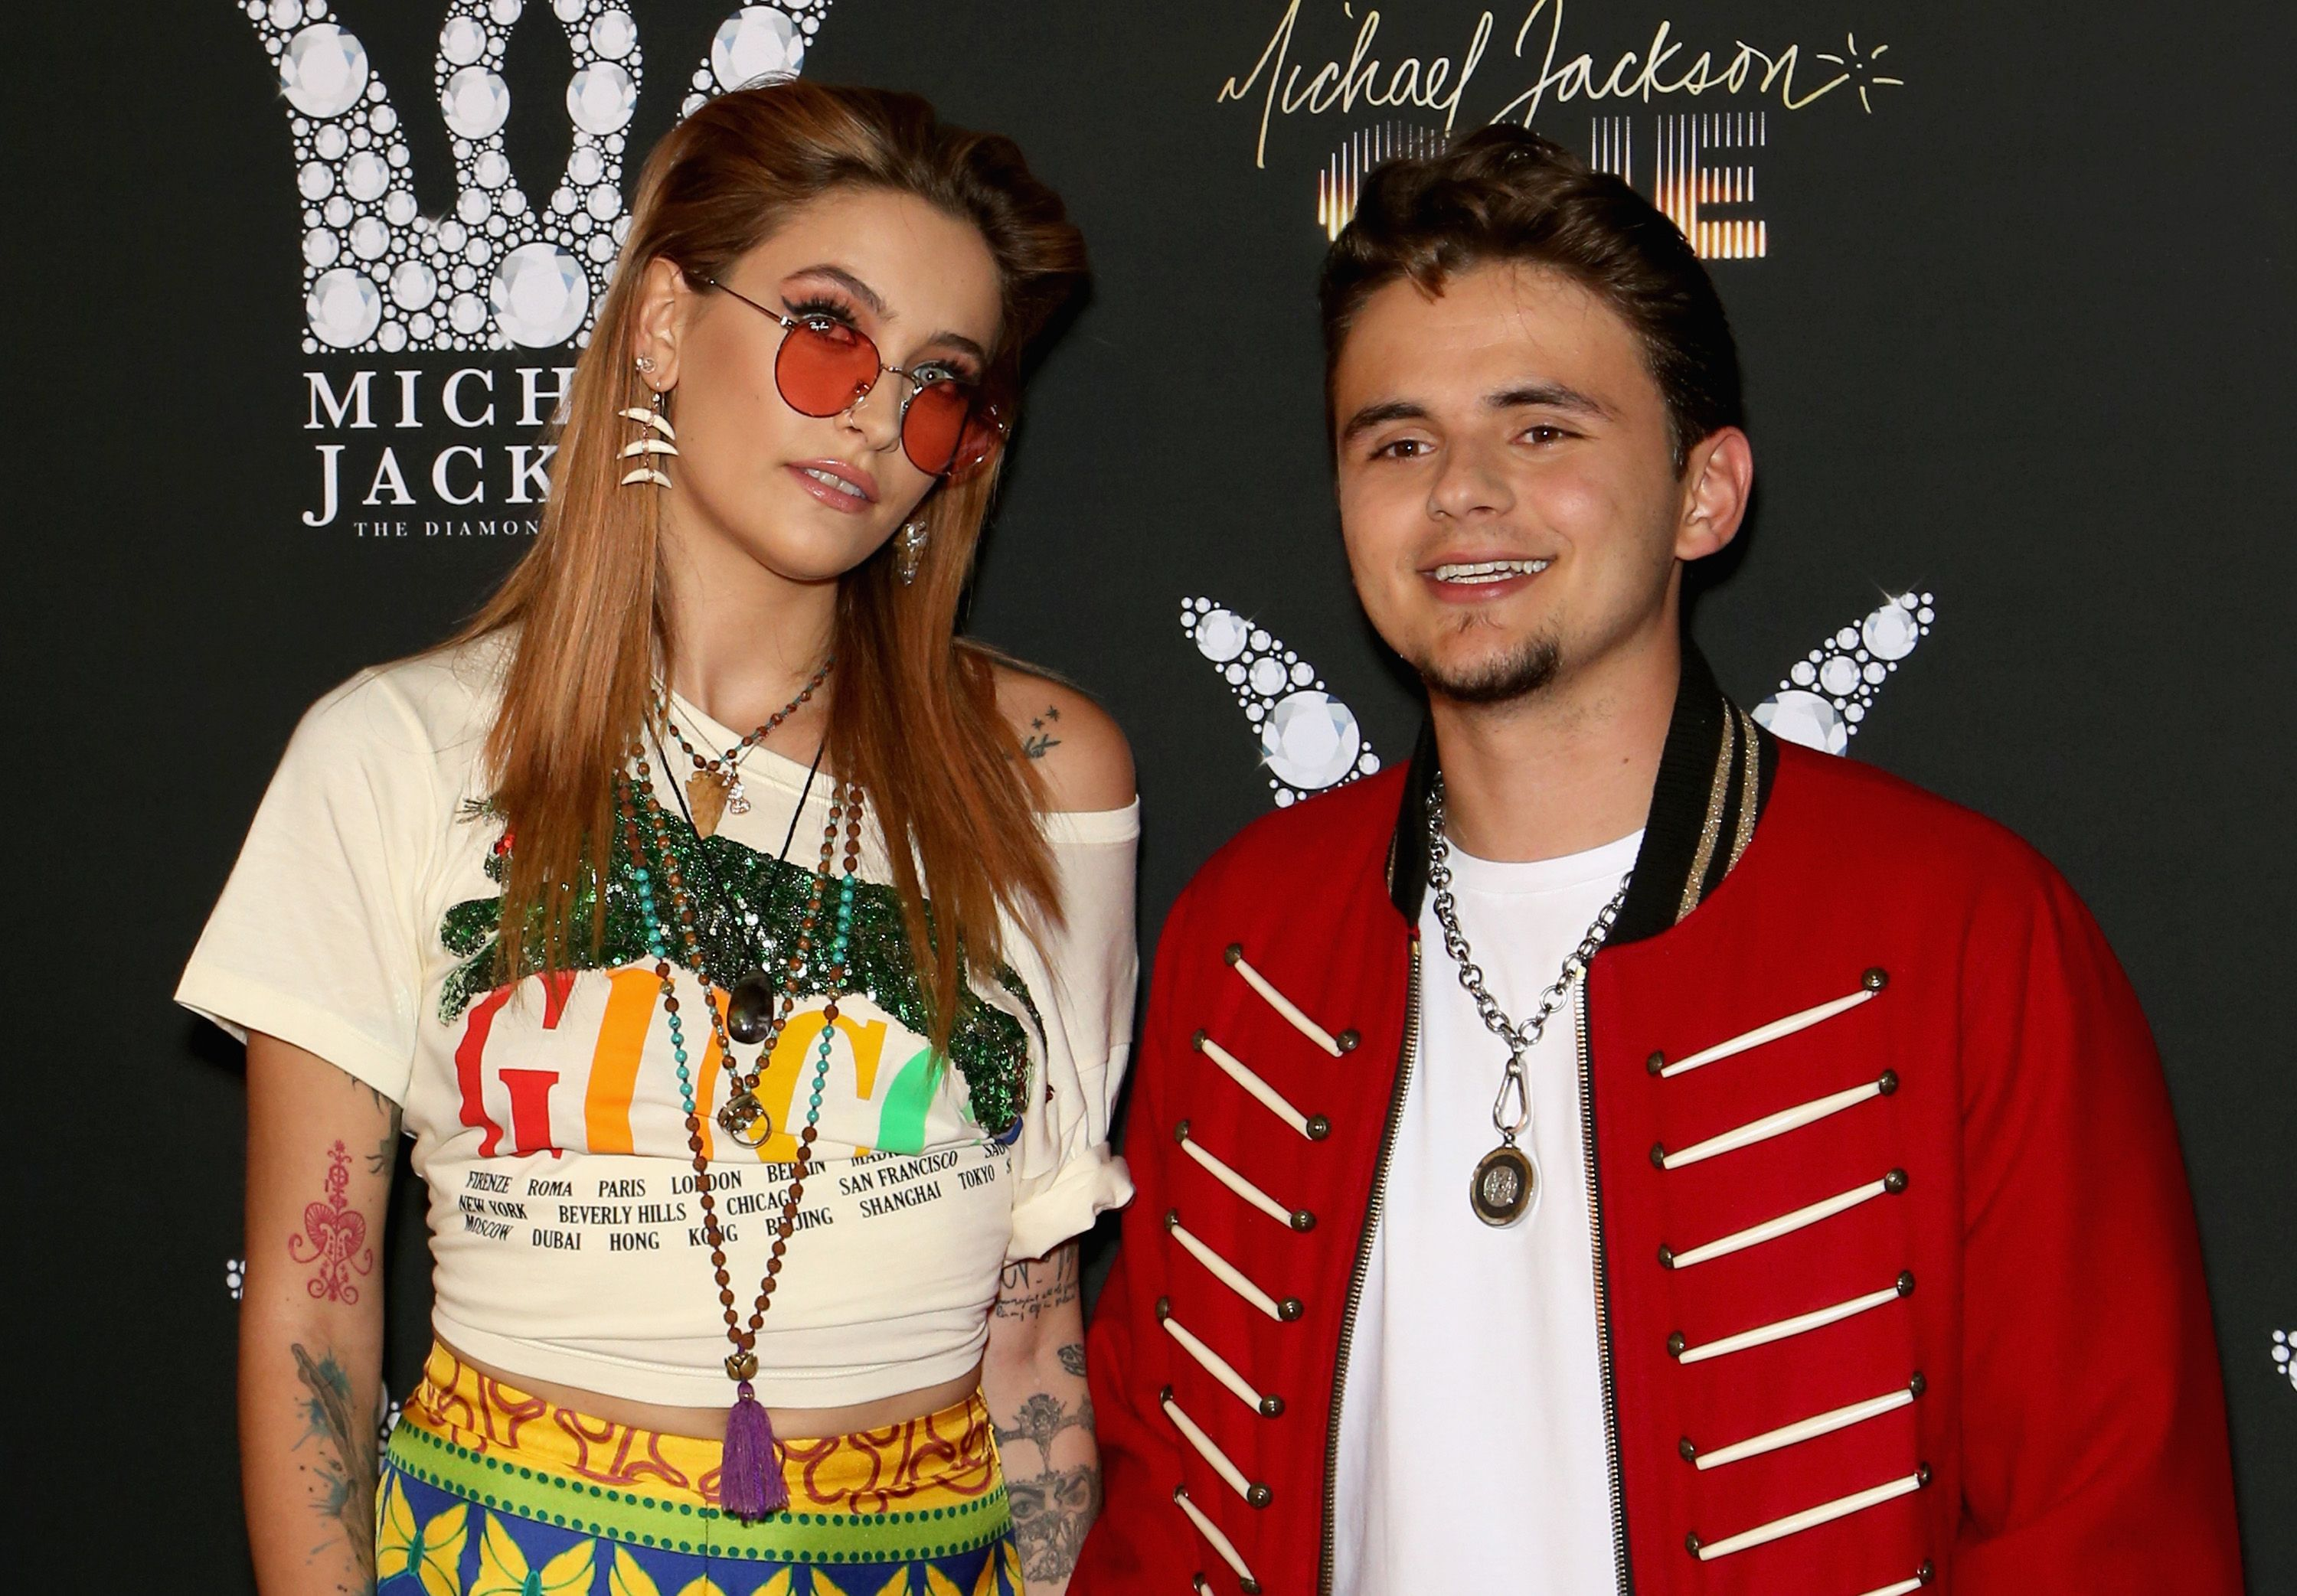 Paris Jackson and her brother Prince Michael Jackson at the Michael Jackson diamond birthday celebration at Mandalay Bay Resort and Casino on August 29, 2018 in Las Vegas, Nevada.   Photo: Getty Images